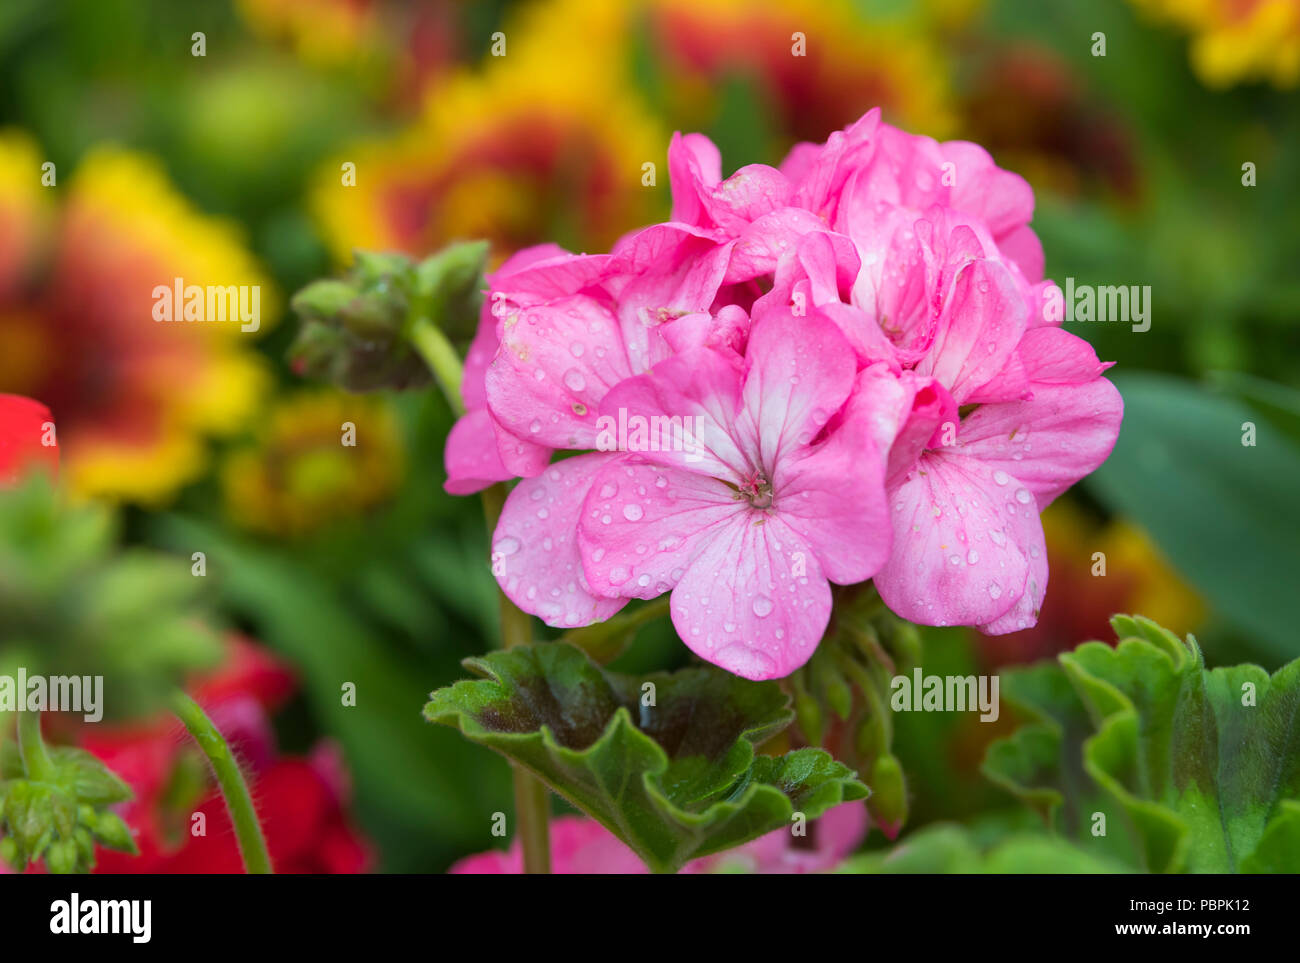 Hydrangea macrophylla. Pink Hydrangeas flowers in Summer (July) flowering in West Sussex, England, UK. - Stock Image